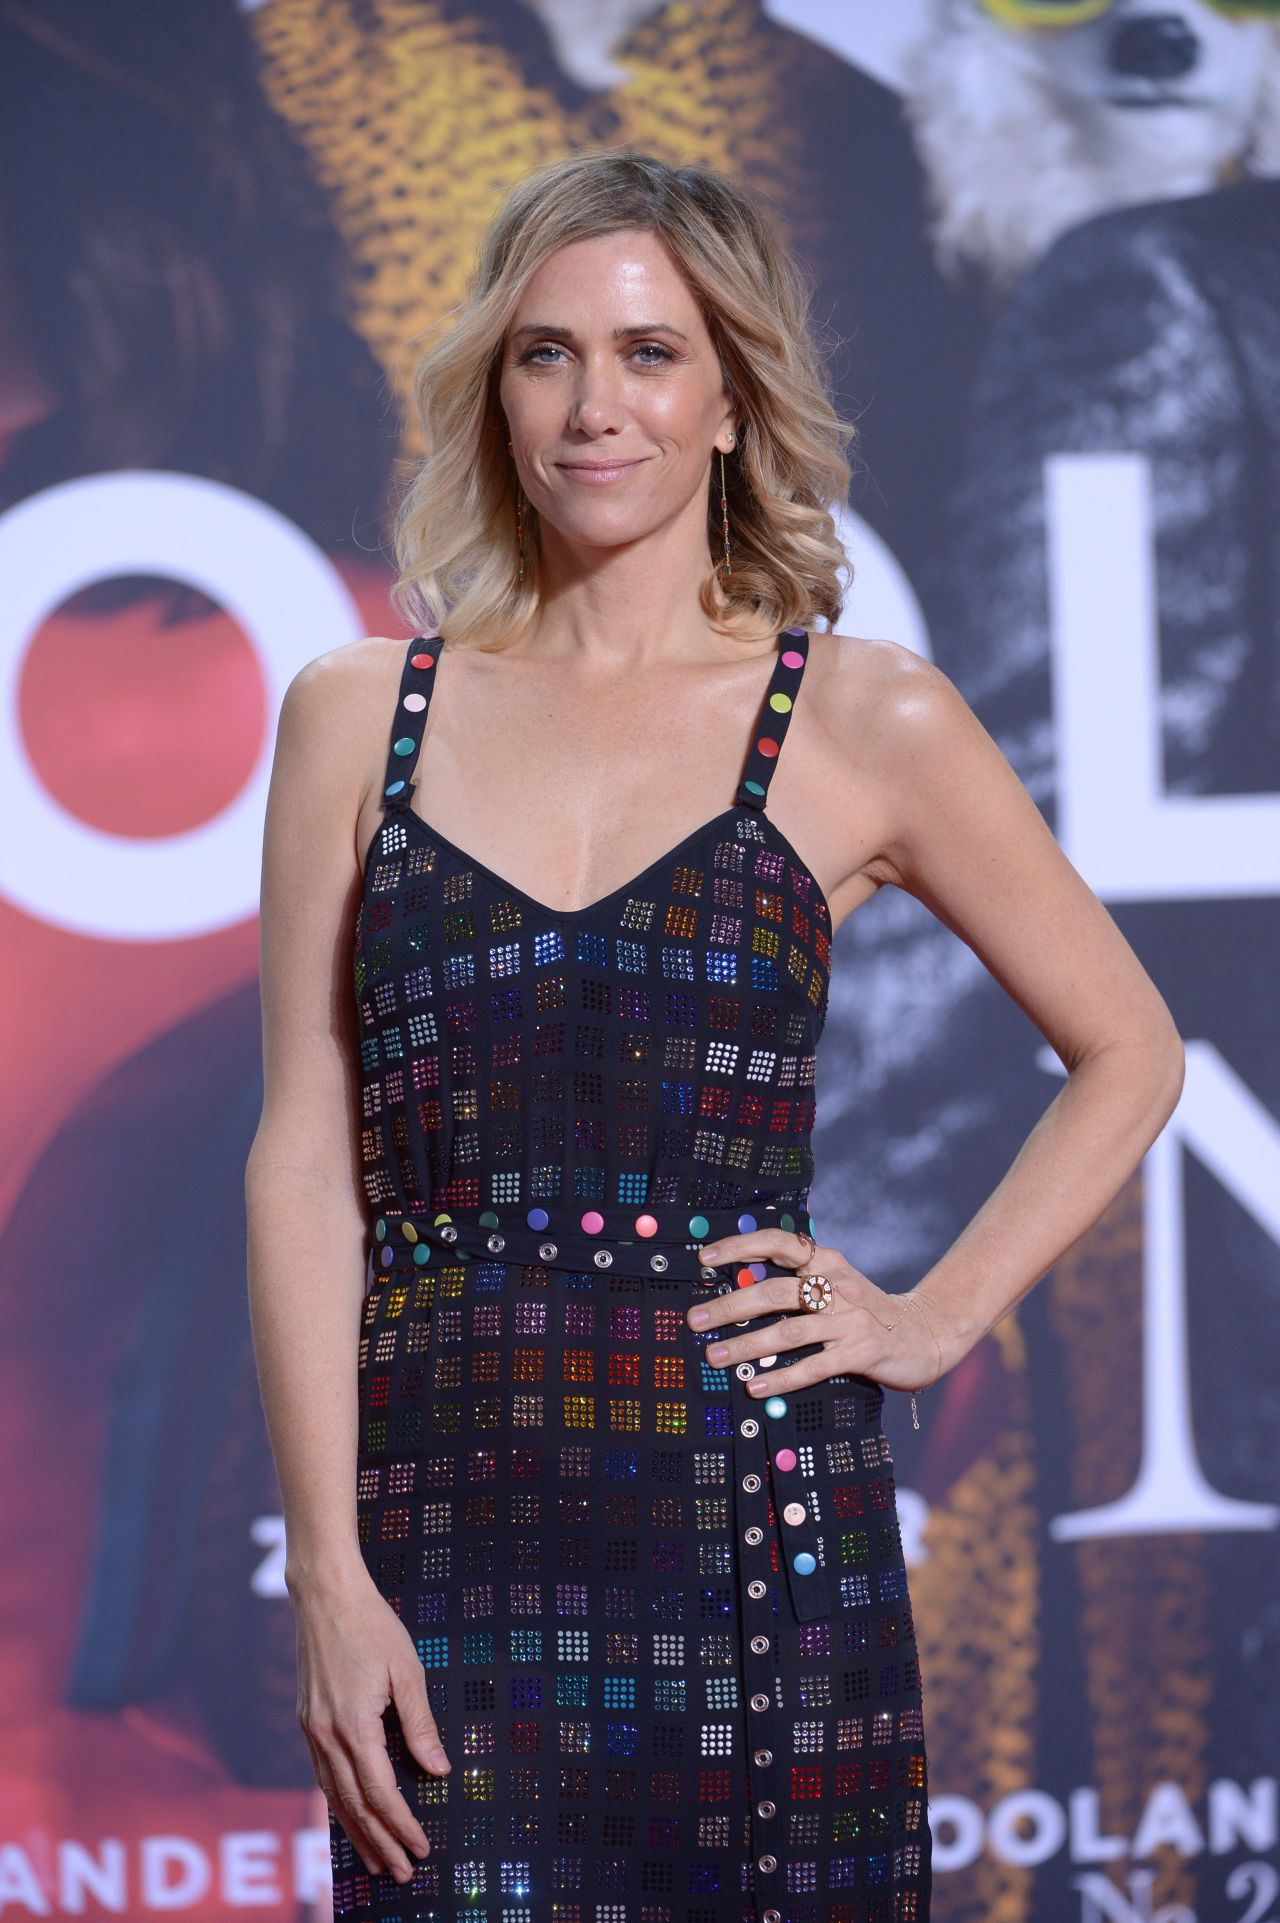 kristen-wiig-zoolander-2-fan-screening-in-berlin-2